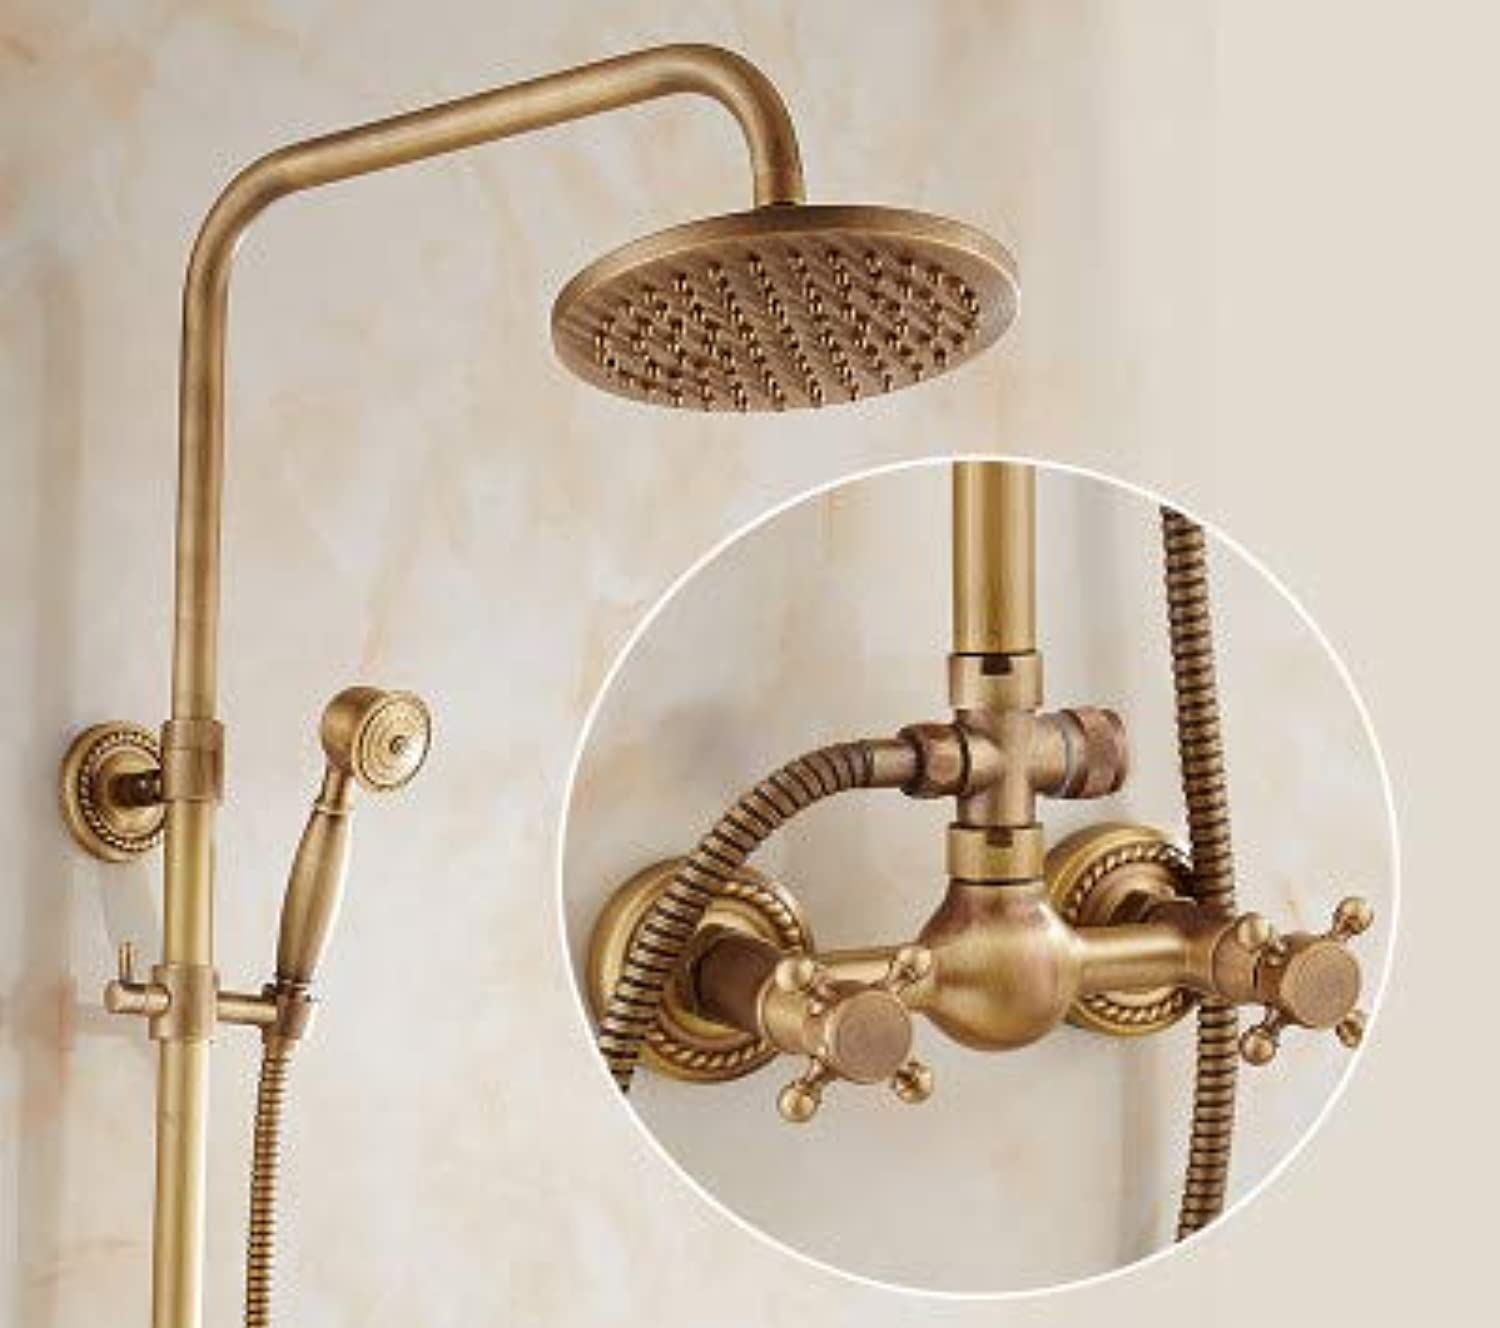 Hlluya Professional Sink Mixer Tap Kitchen Faucet Antique Shower Faucet Kit Full brass faucets bathroom rain shower sprinkler retro shower,A6